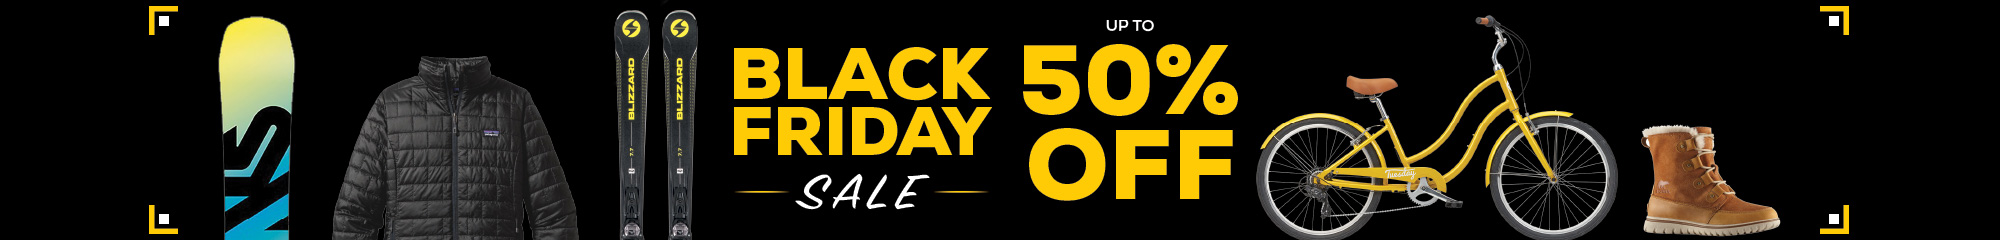 Black Friday Now - Monday Save up to 50% off